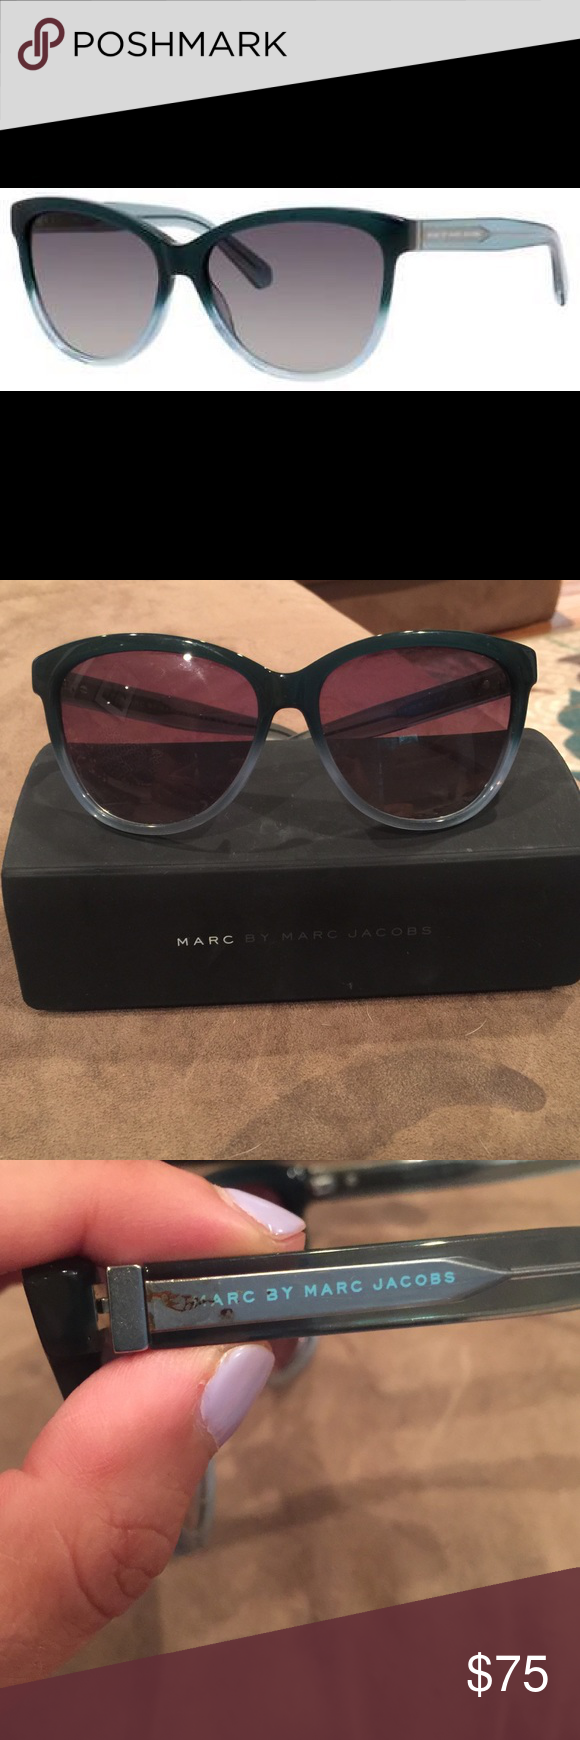 Marc Jacobs sunglasses Marc Jacobs sunglasses. I bought these at the beginning of this season but they don't suit my face well. Only flaw is a little mark on the side shown in pic 3. Retails for $147 Marc by Marc Jacobs Accessories Glasses